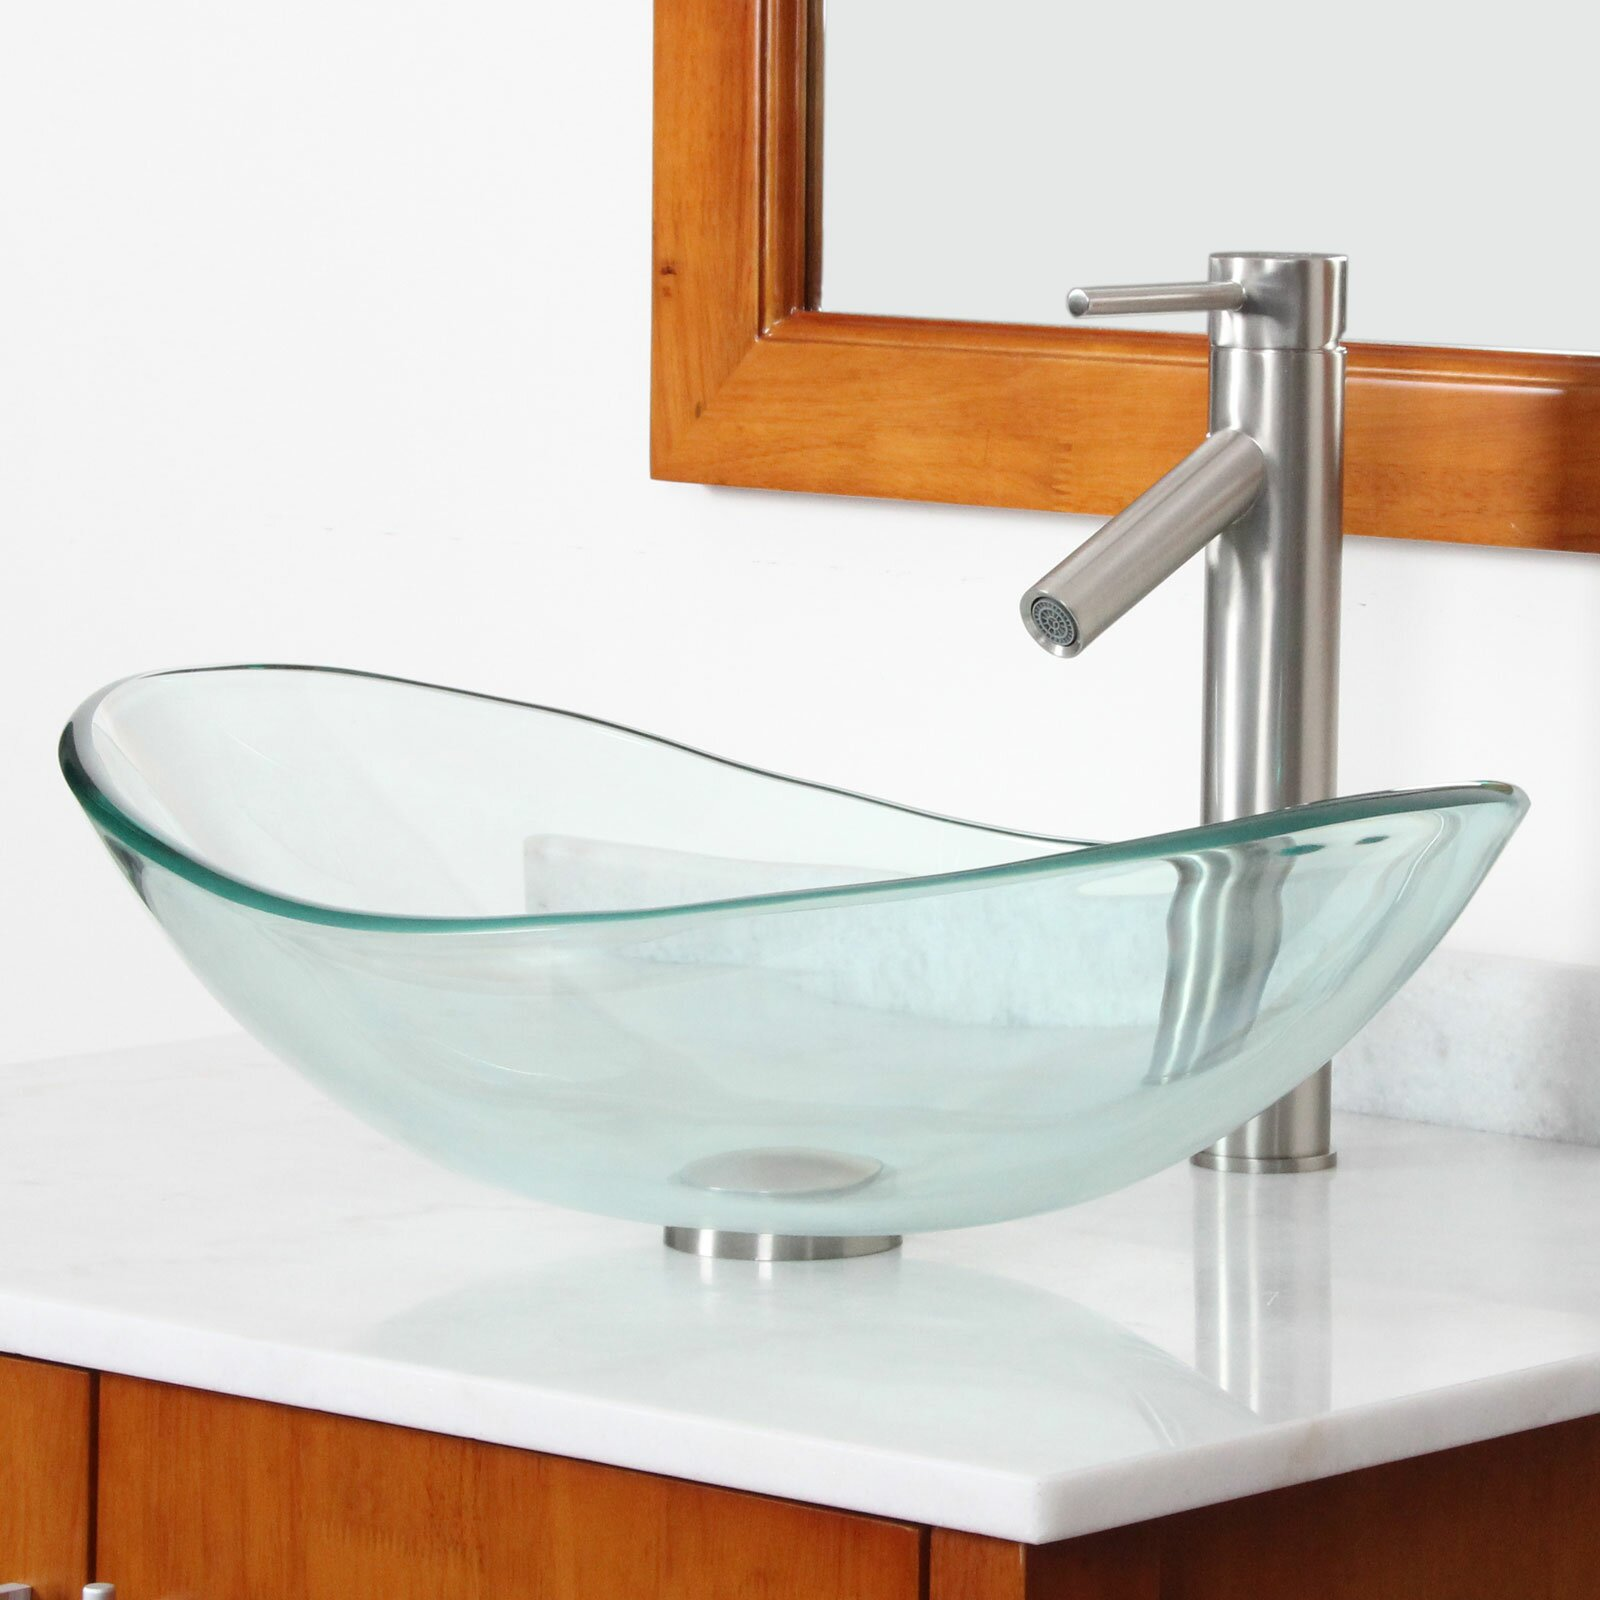 elite tempered glass boat shaped bowl vessel bathroom sink reviews wayfair. Black Bedroom Furniture Sets. Home Design Ideas